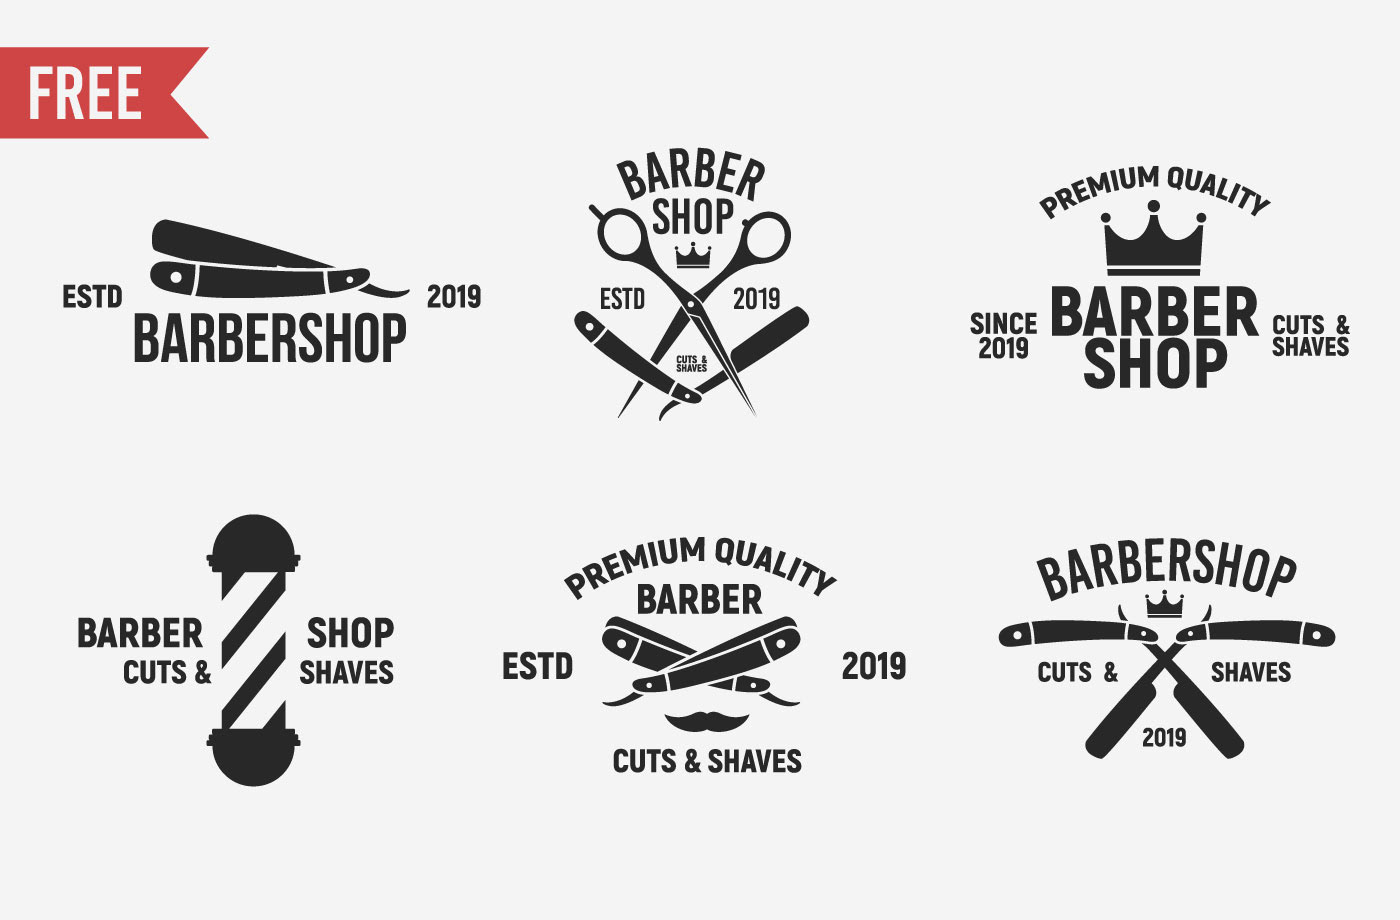 Free Download: 6 Vintage Barber Shop Logos